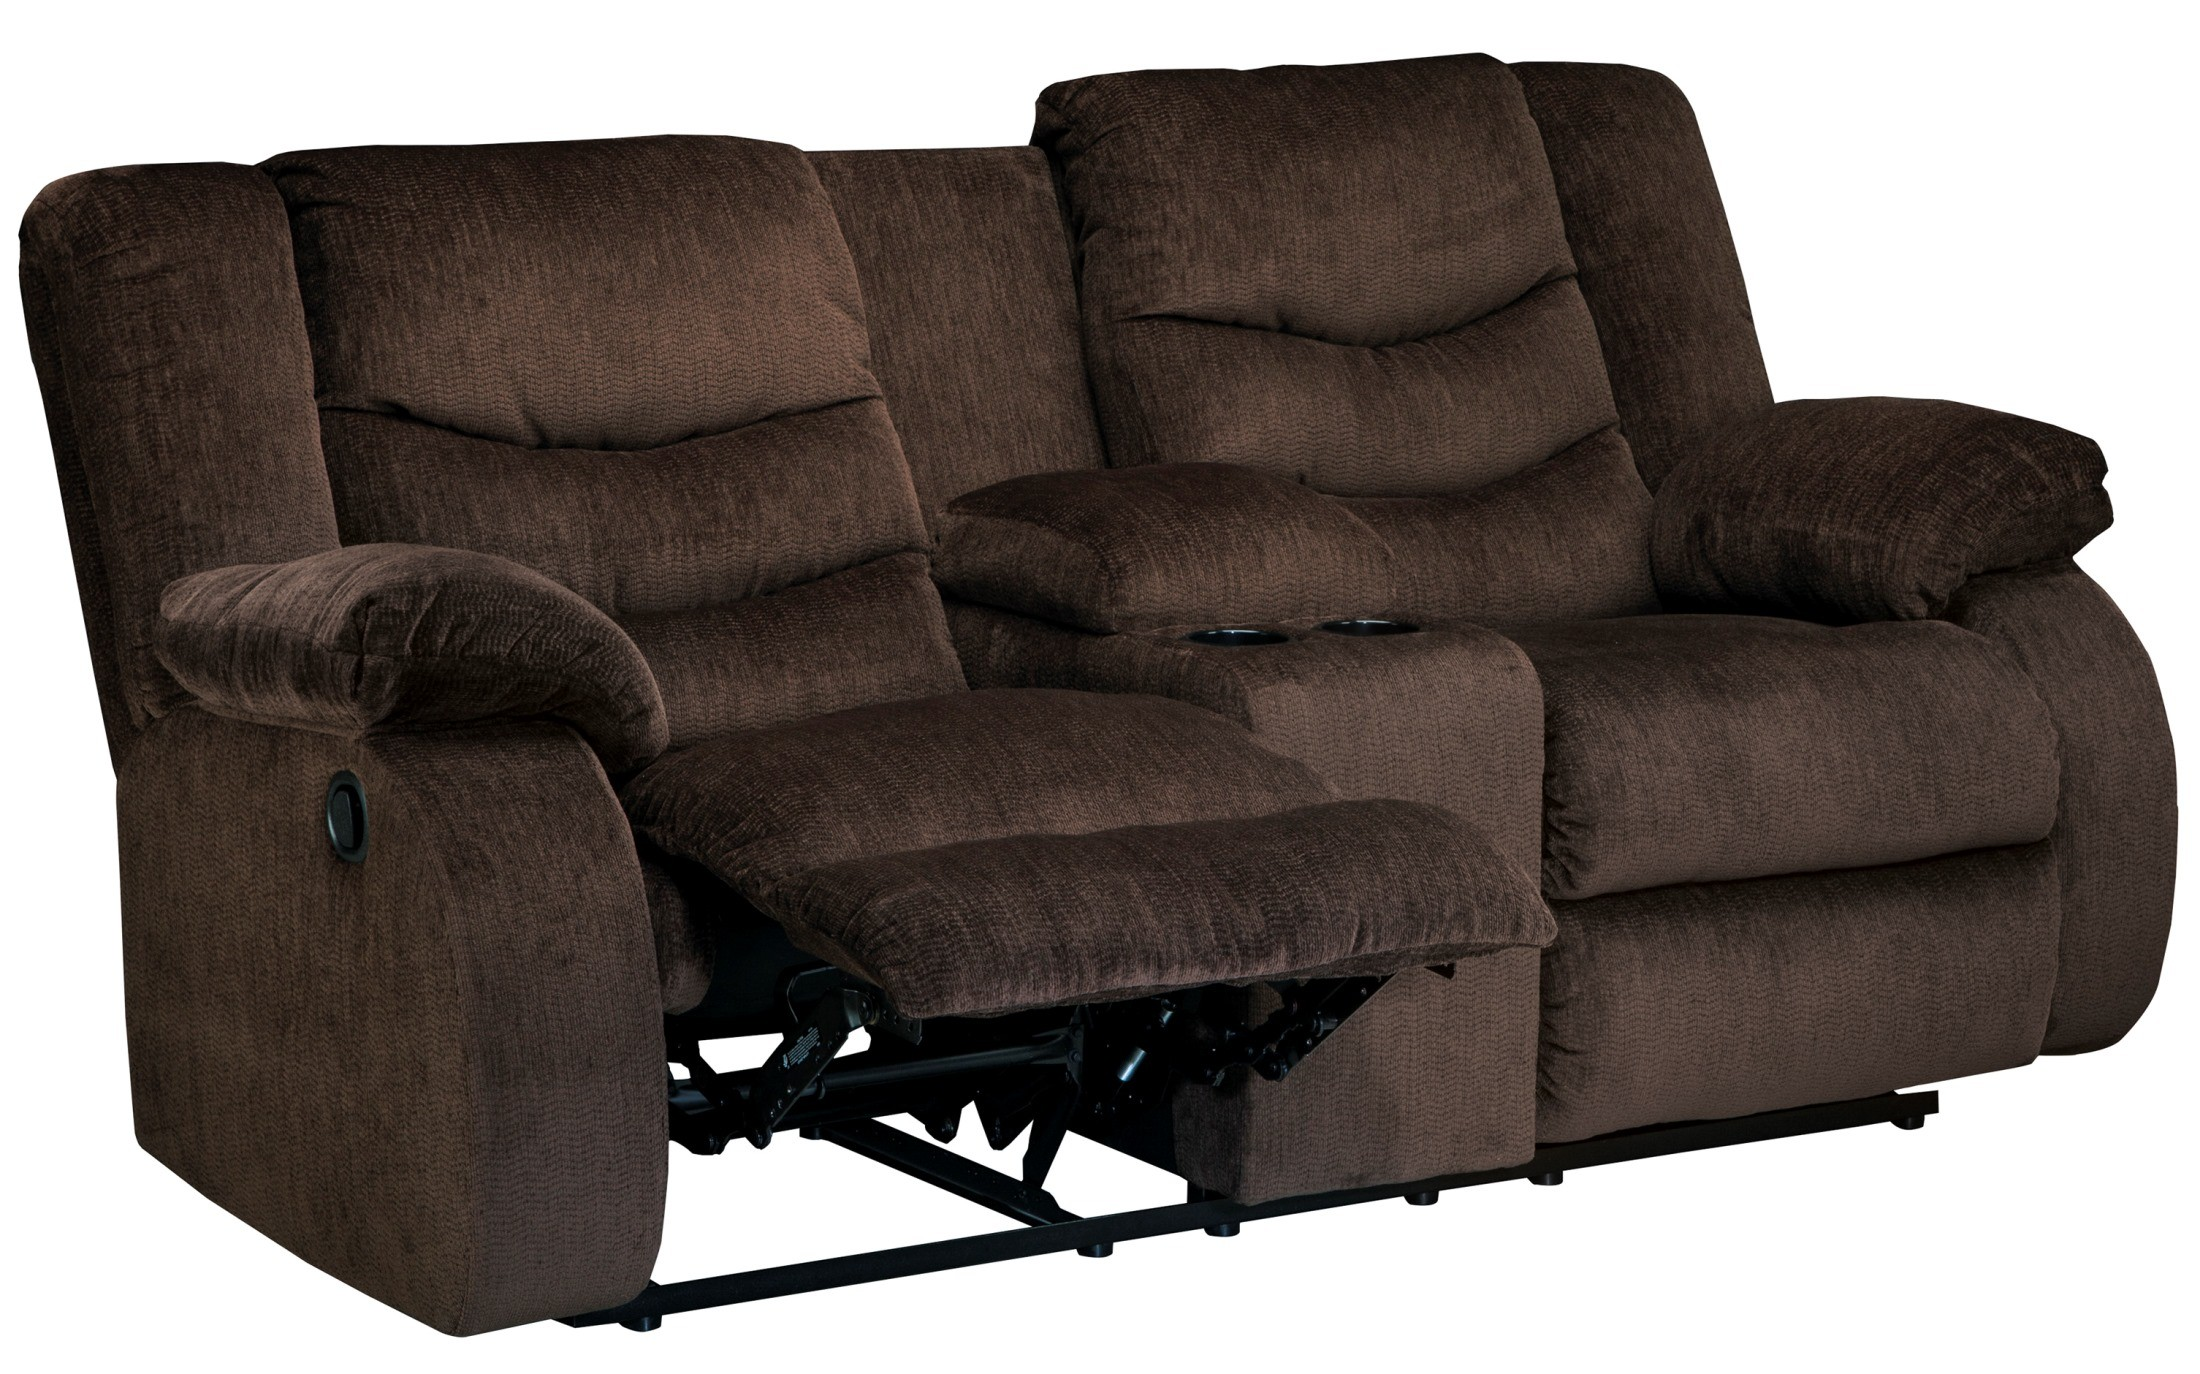 Garek Cocoa Double Power Reclining Loveseat With Console Asl 9200396 Ashley Furniture